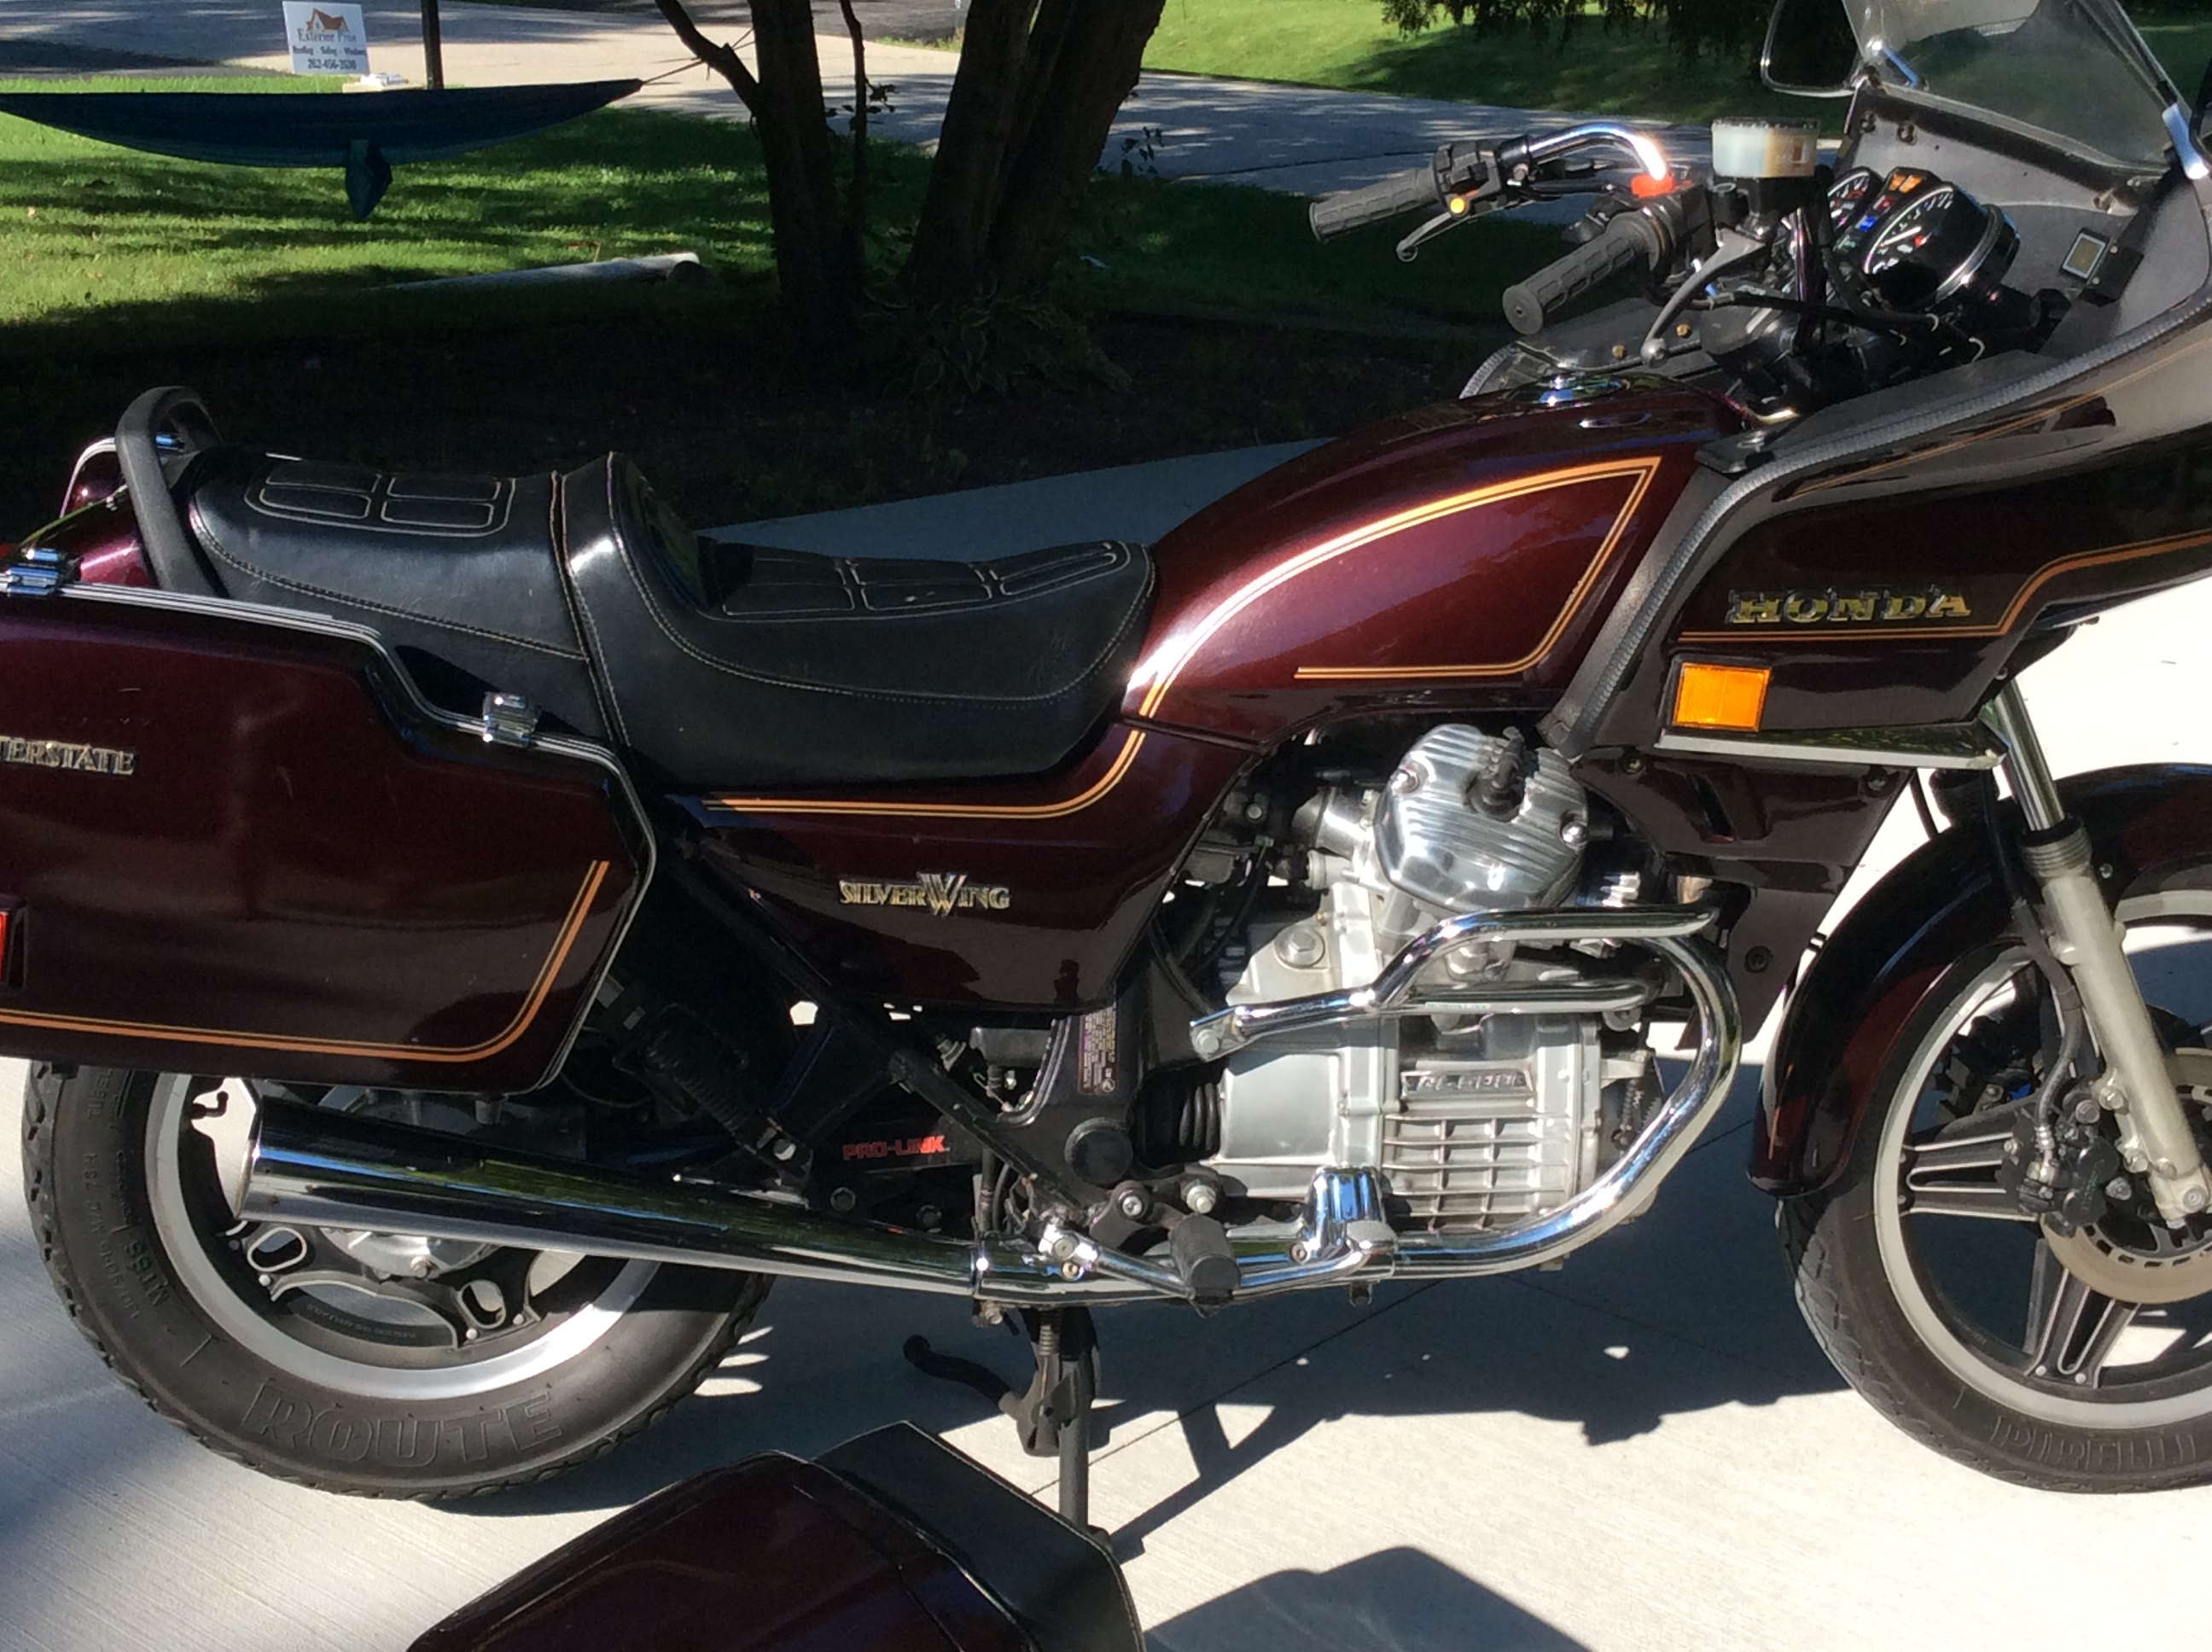 82 GL500 silverwing interstate for sale